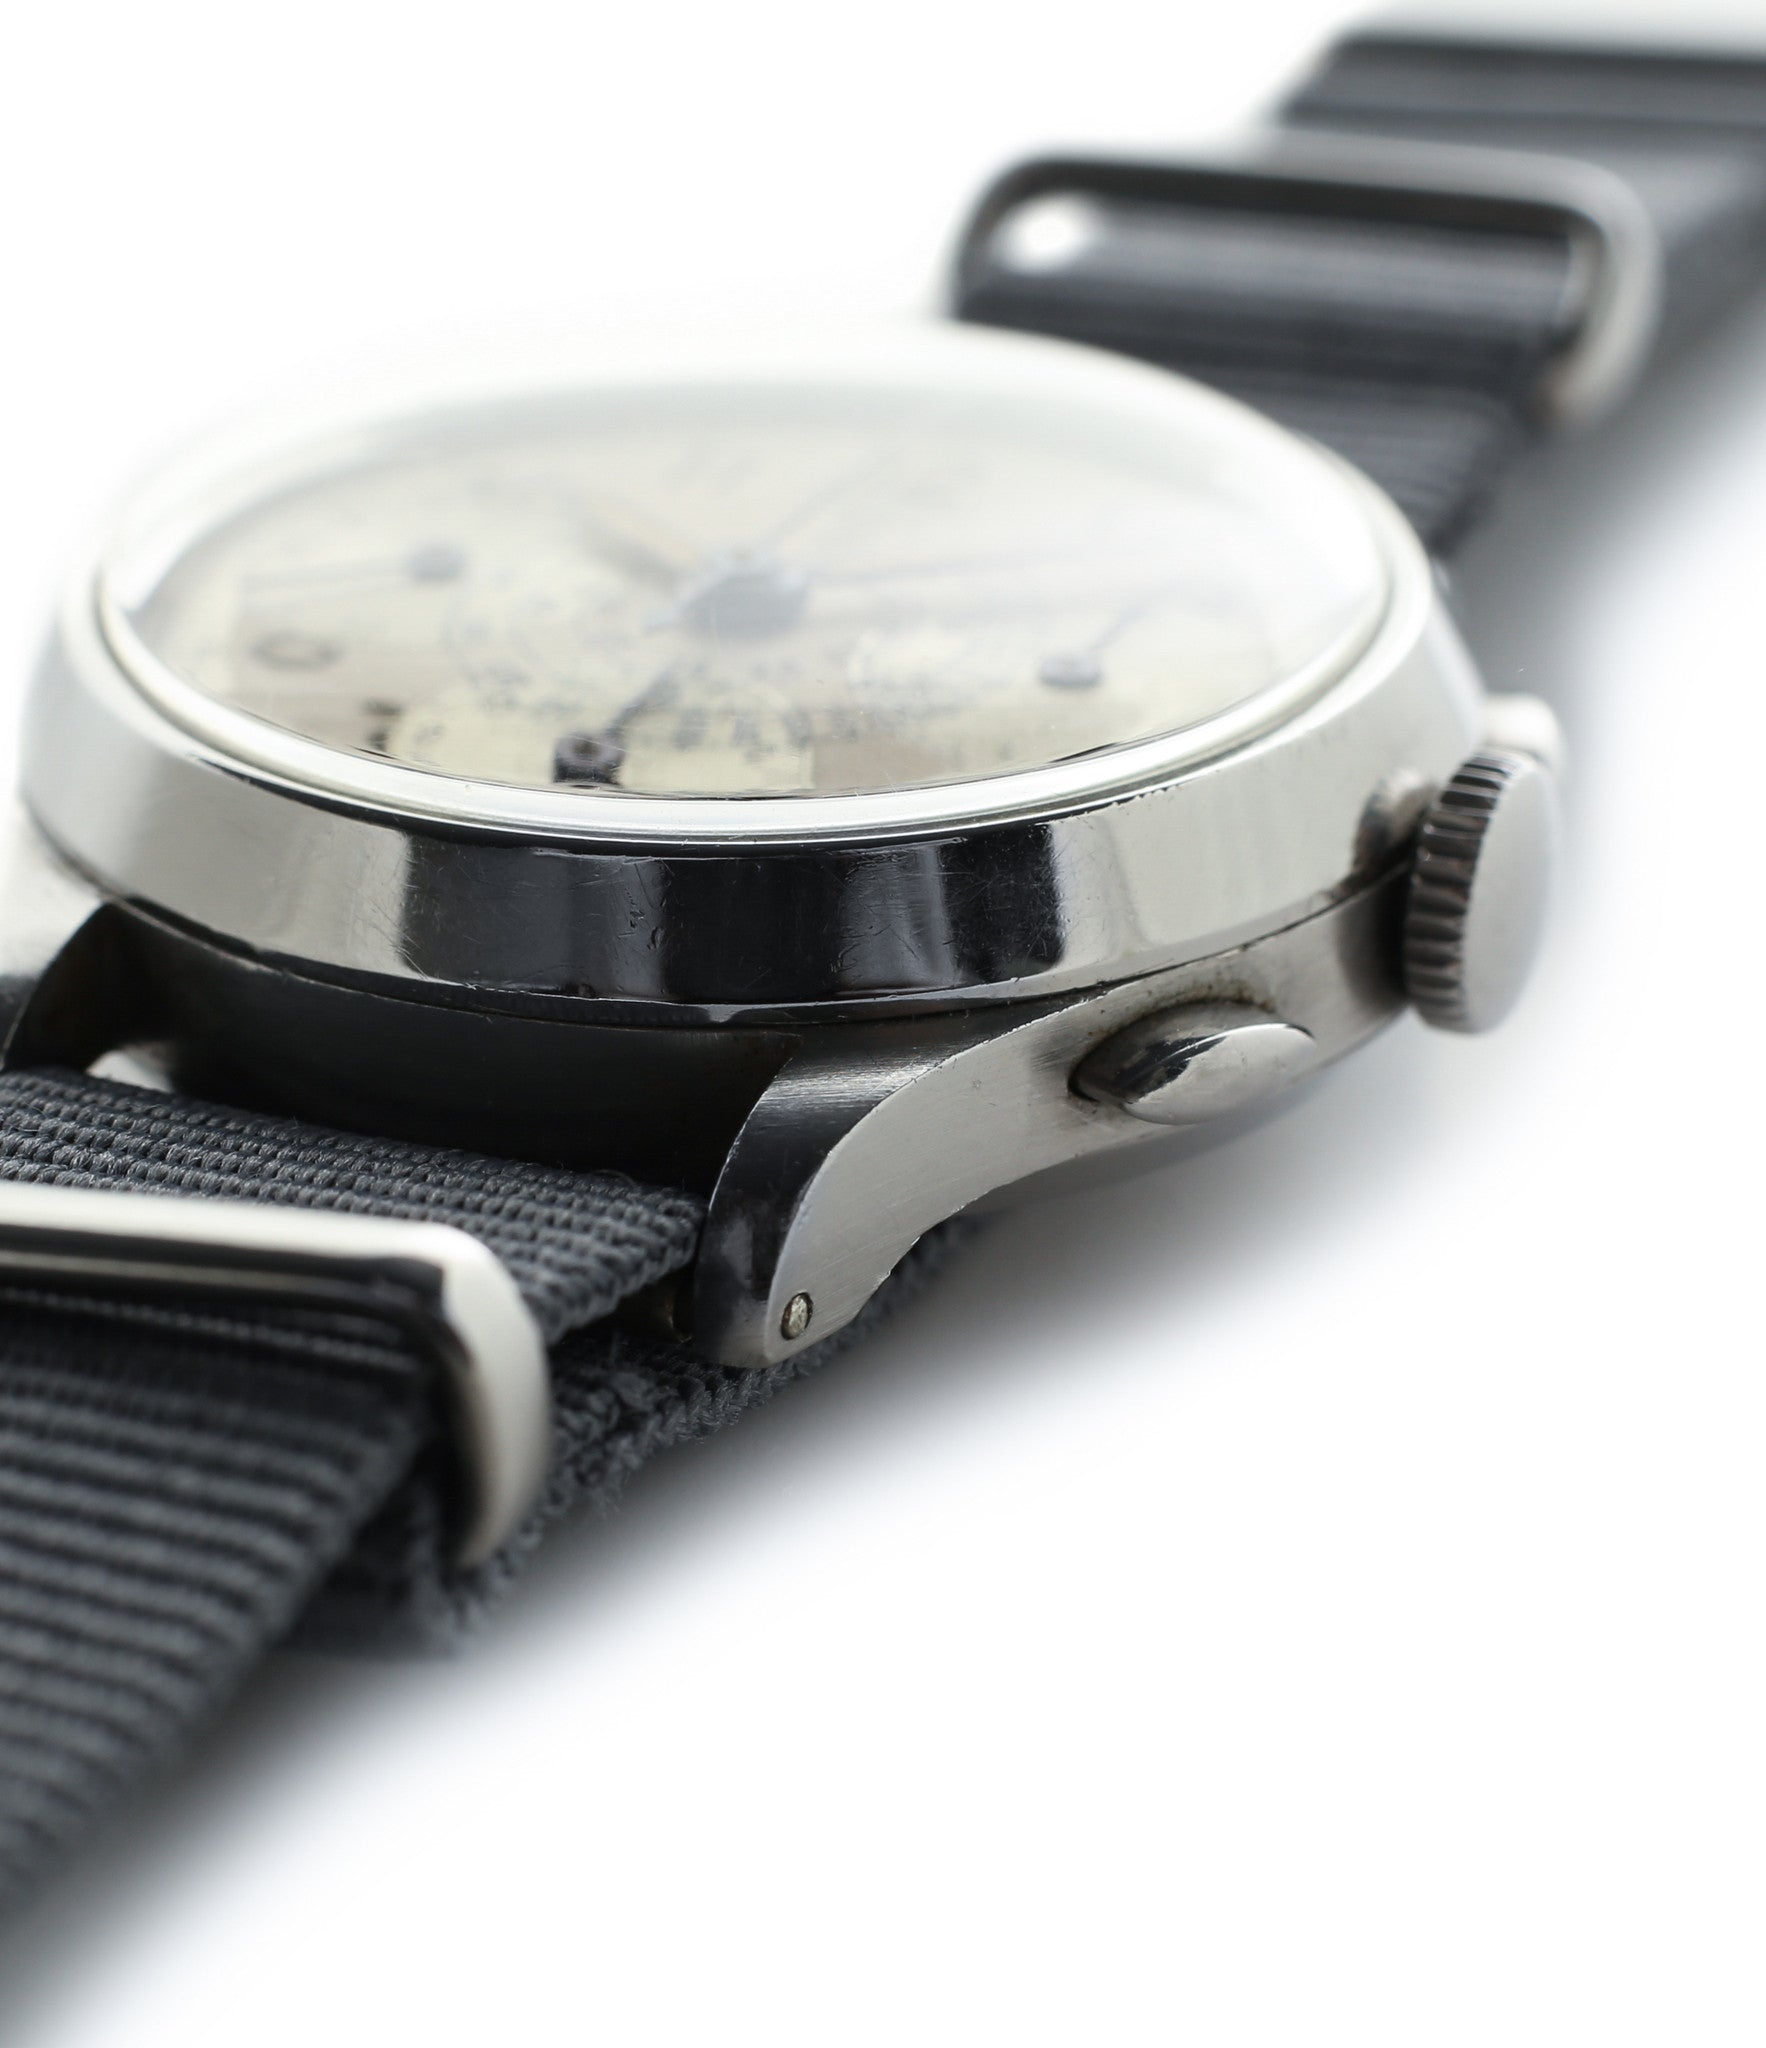 Heuer vintage Chronograph steel watch for sale online at A Collected Man London